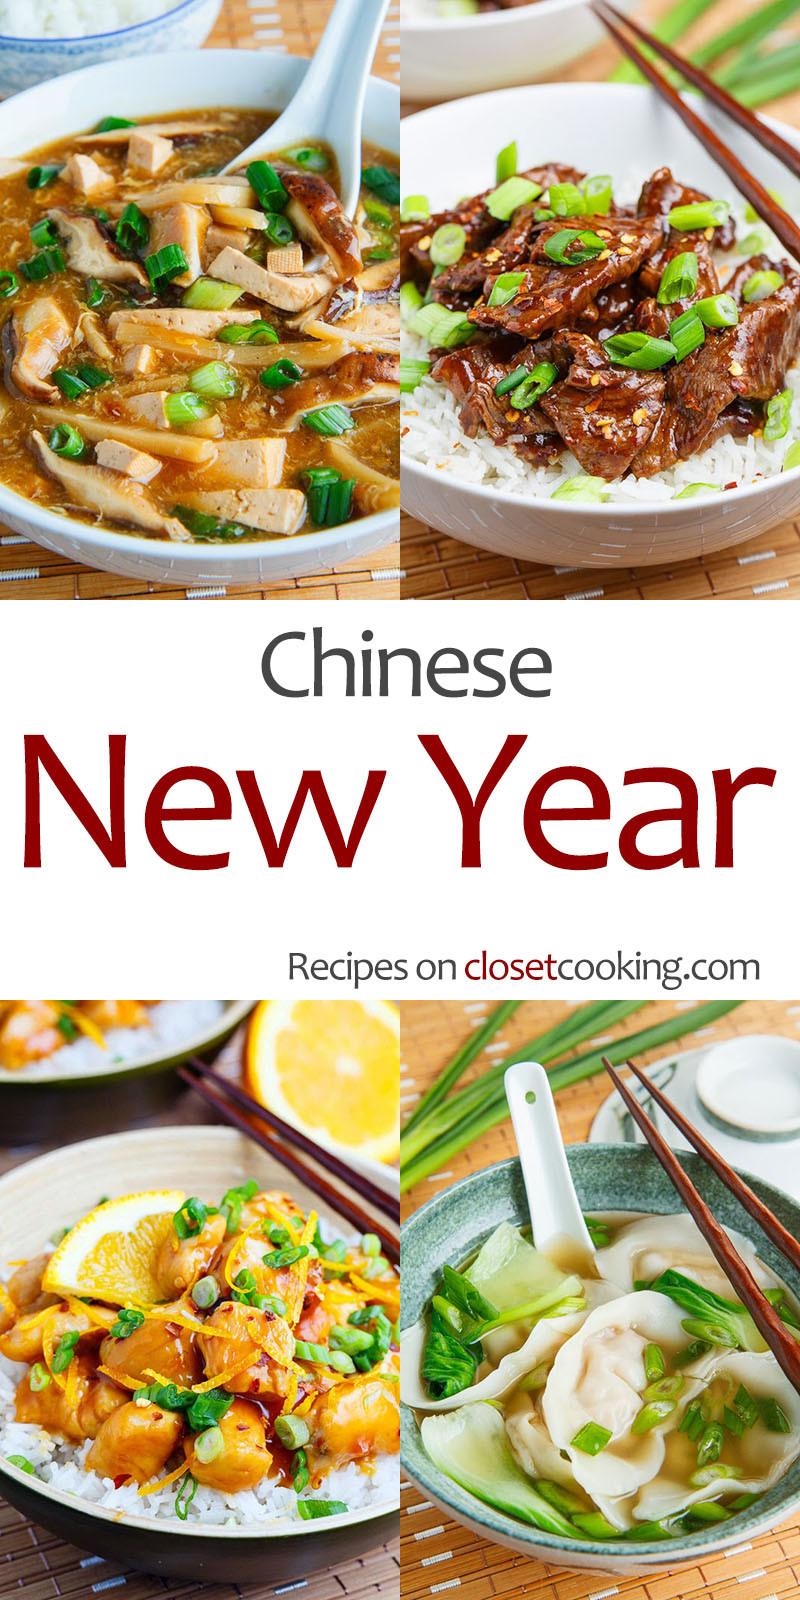 Chinese New Year Foods Recipes  Recipes for the Chinese New Year Closet Cooking